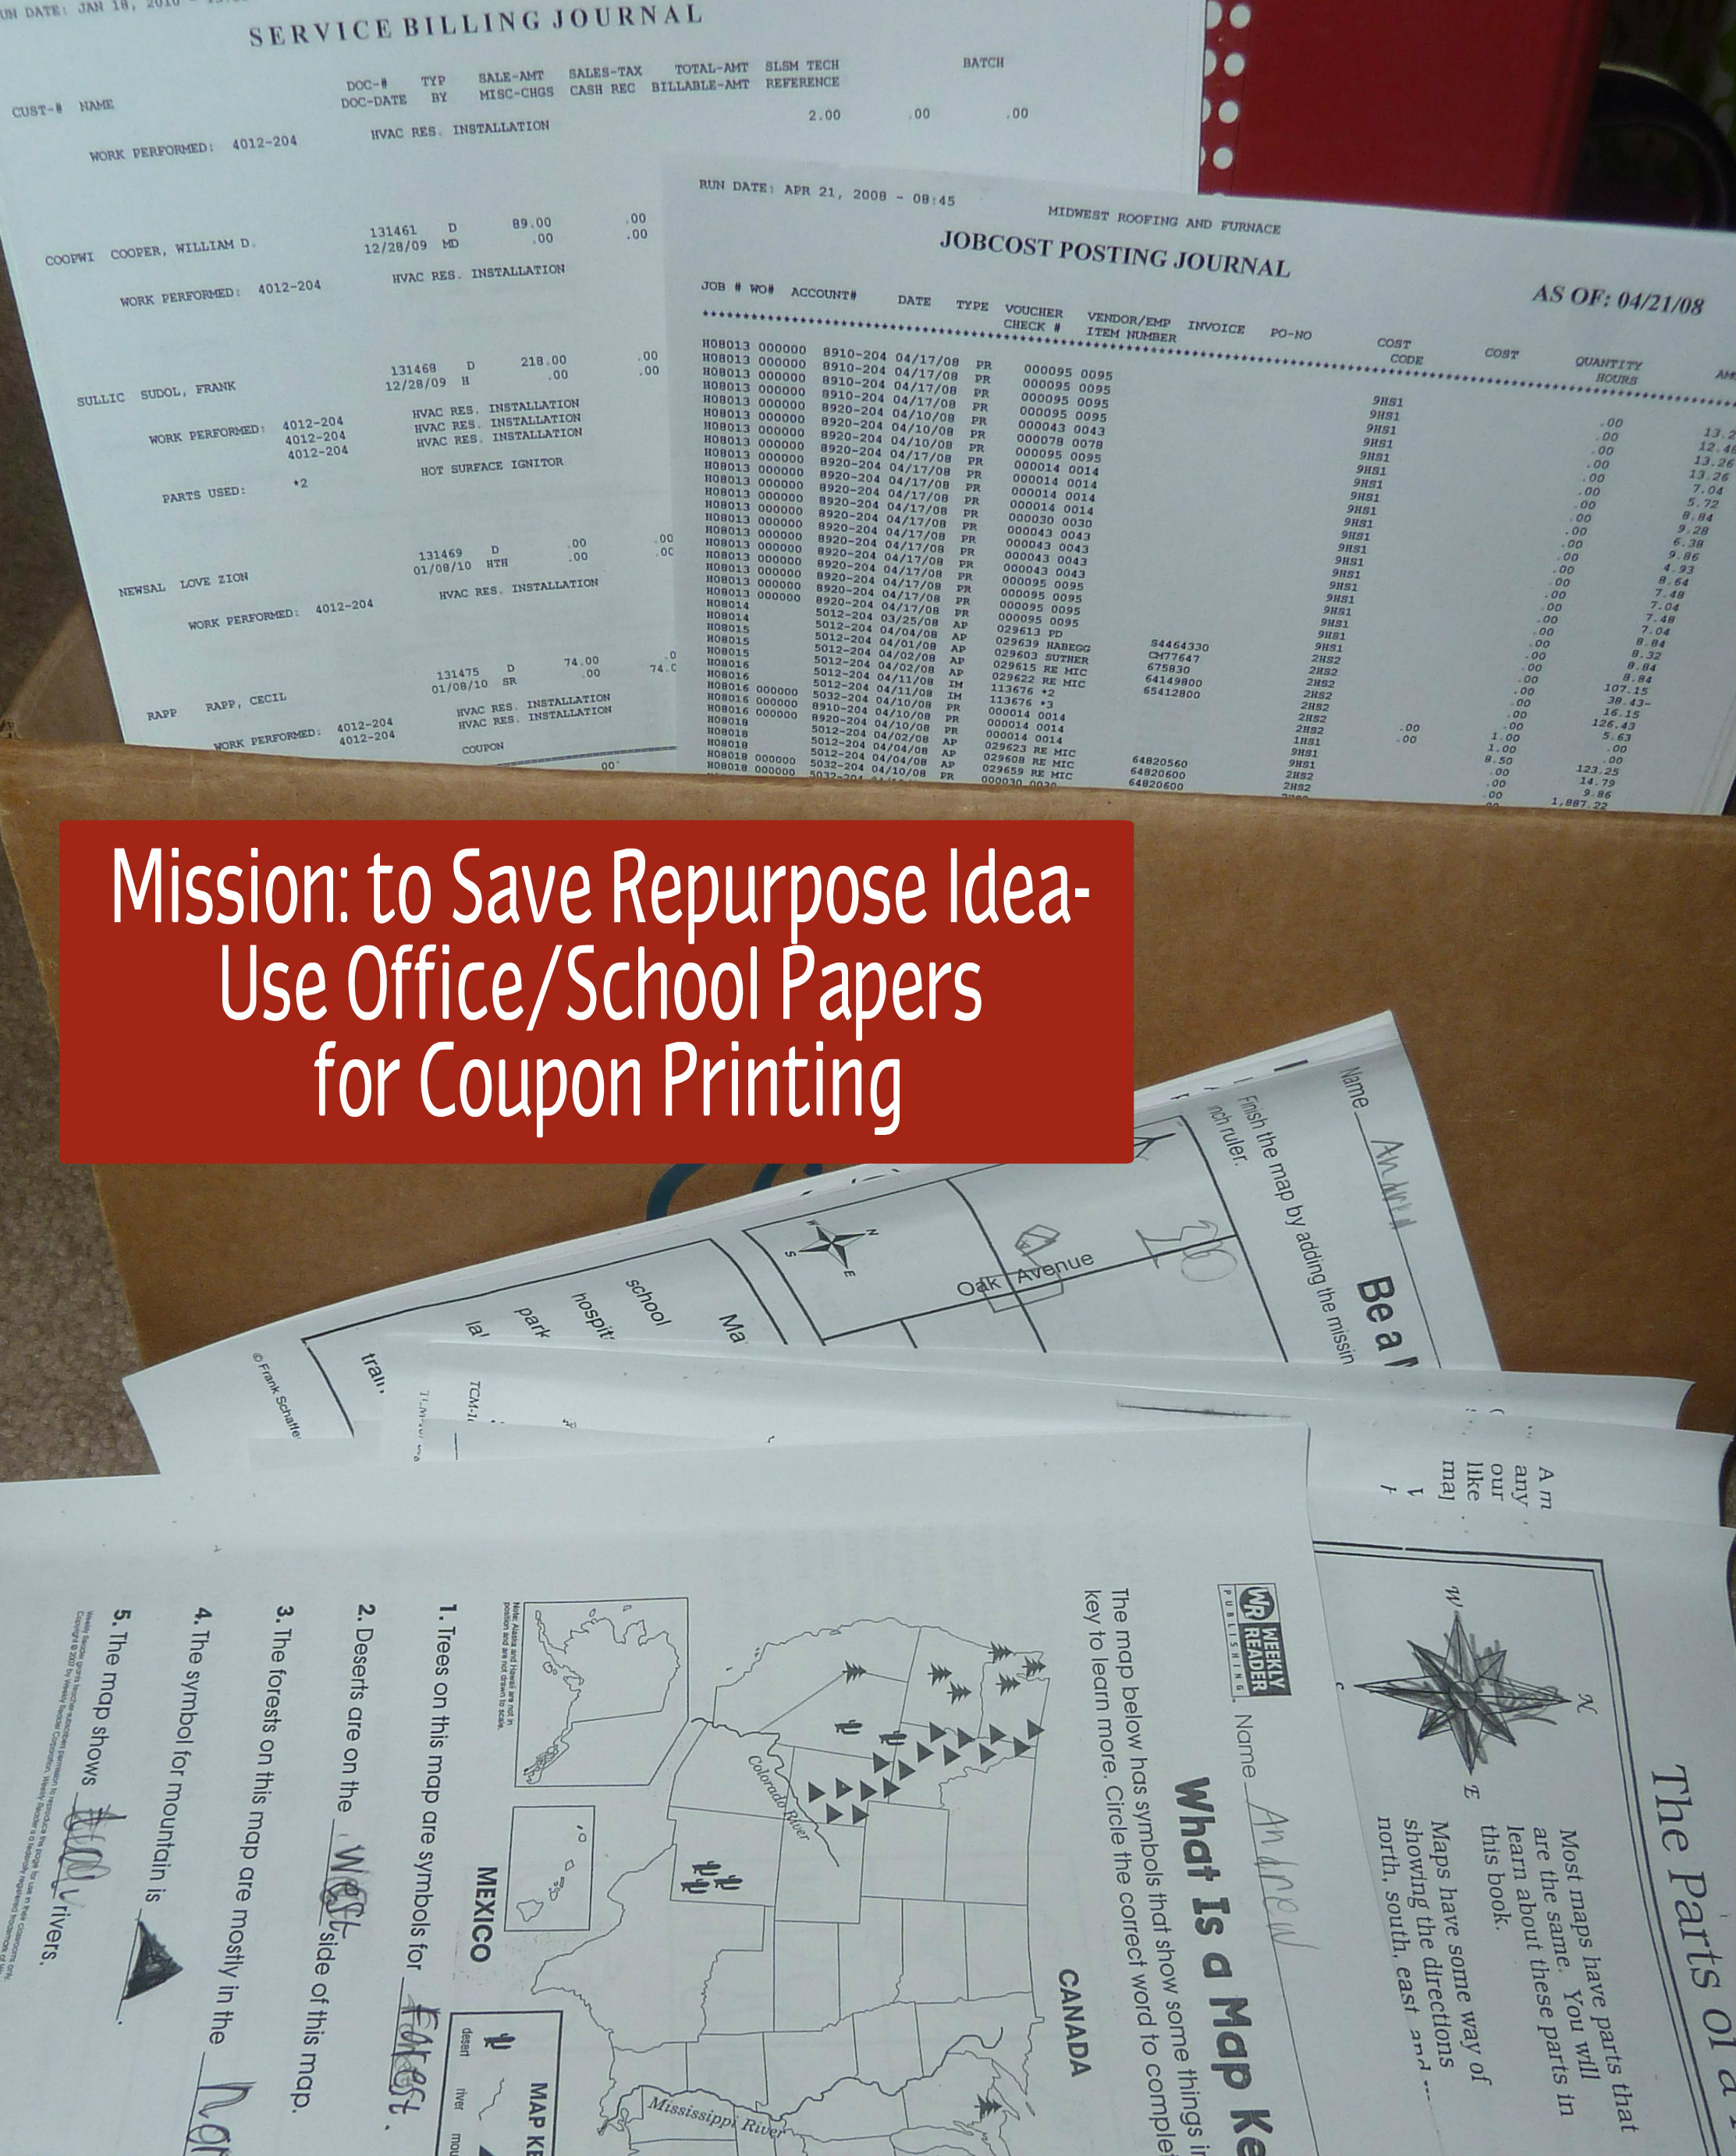 implement the back side of the paper rule.  This means we use recycled business papers (from my in-laws) and school papers for crafting, general printing and especially coupon printing.